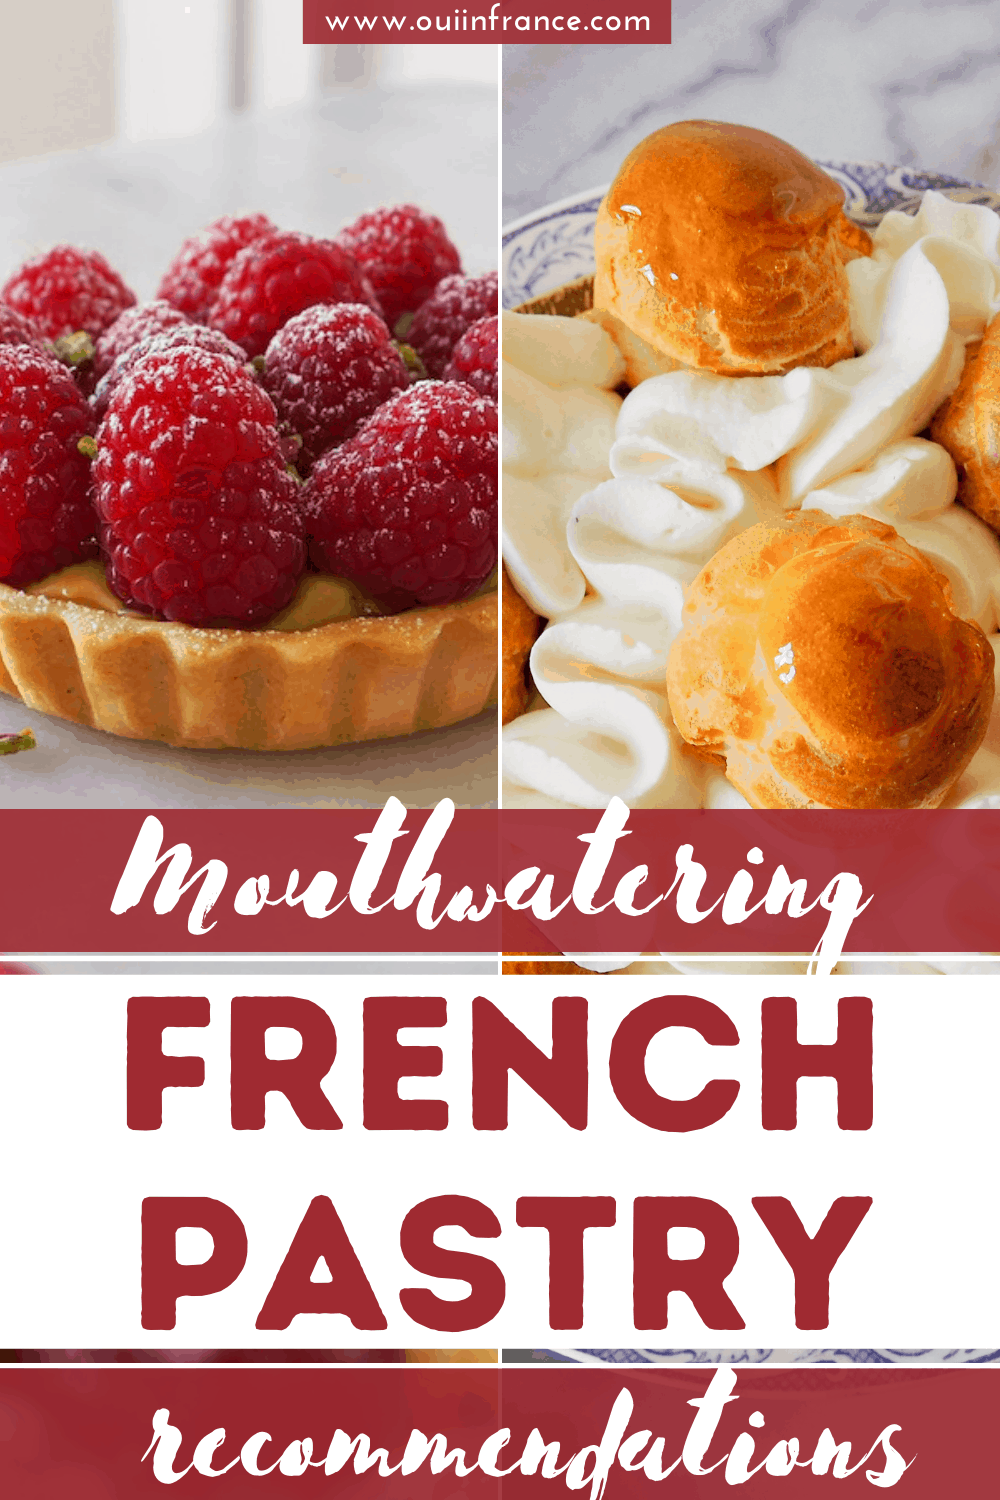 best french pastry recommendations (3)